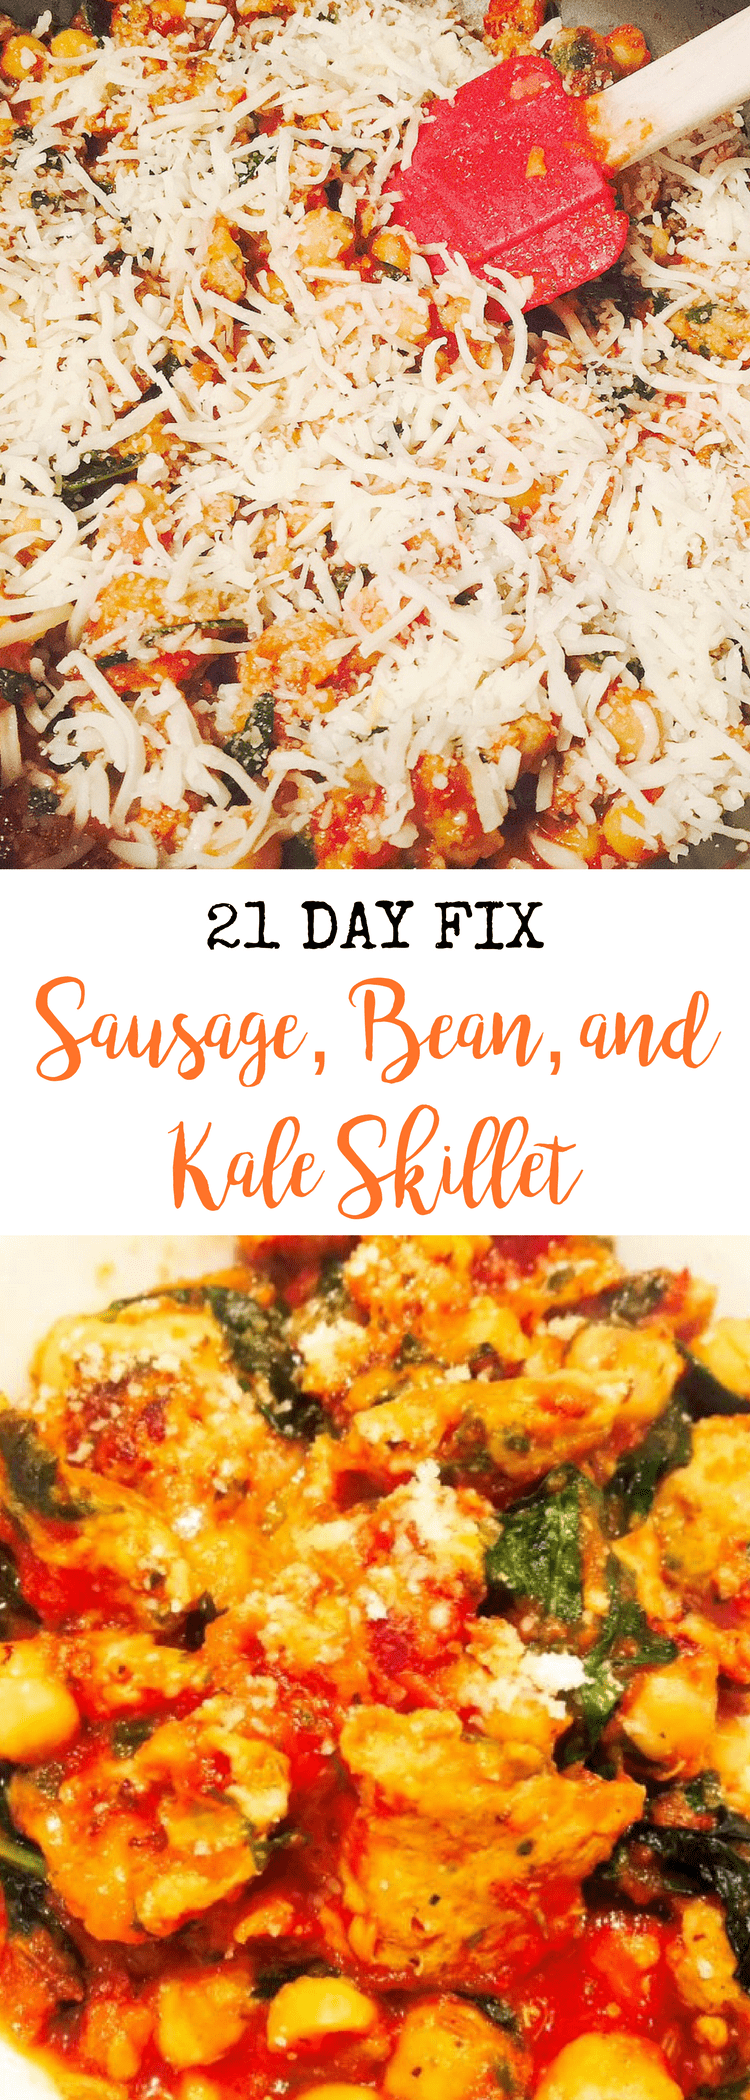 21 Day Fix Sausage, Bean, and Kale Skillet | Confessions of a Fit Foodie